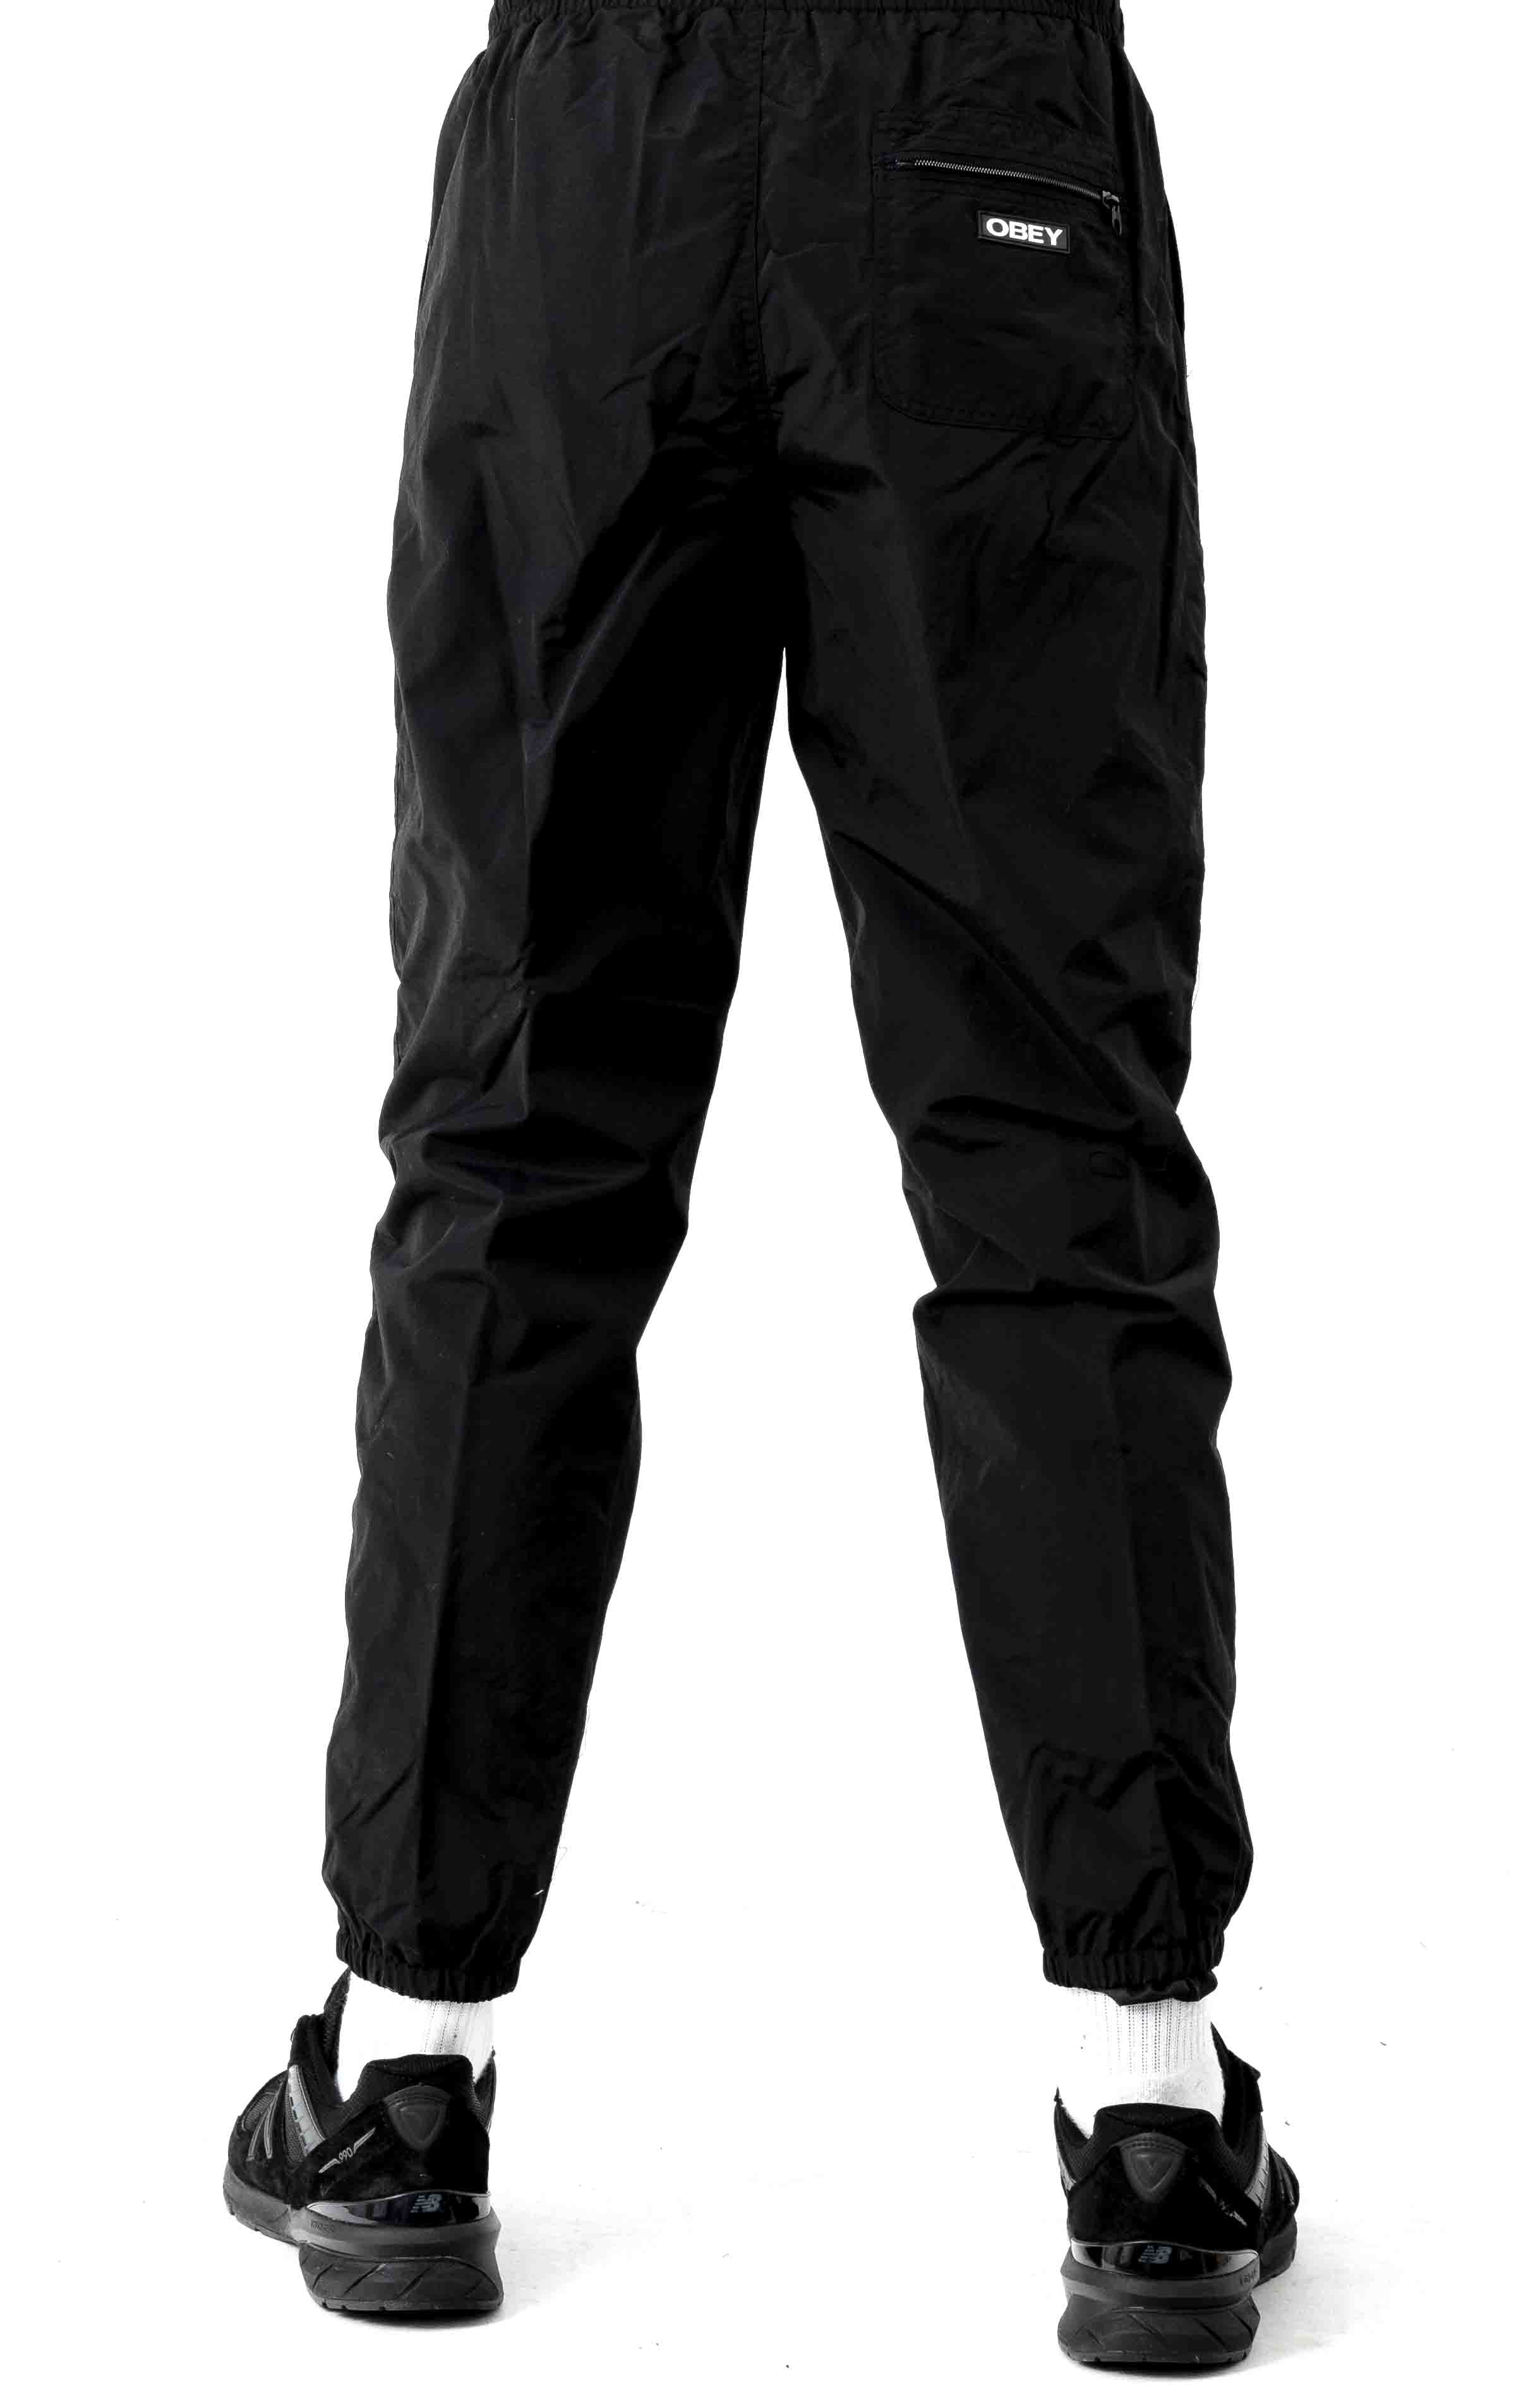 Easy Outdoor Pant - Black 3